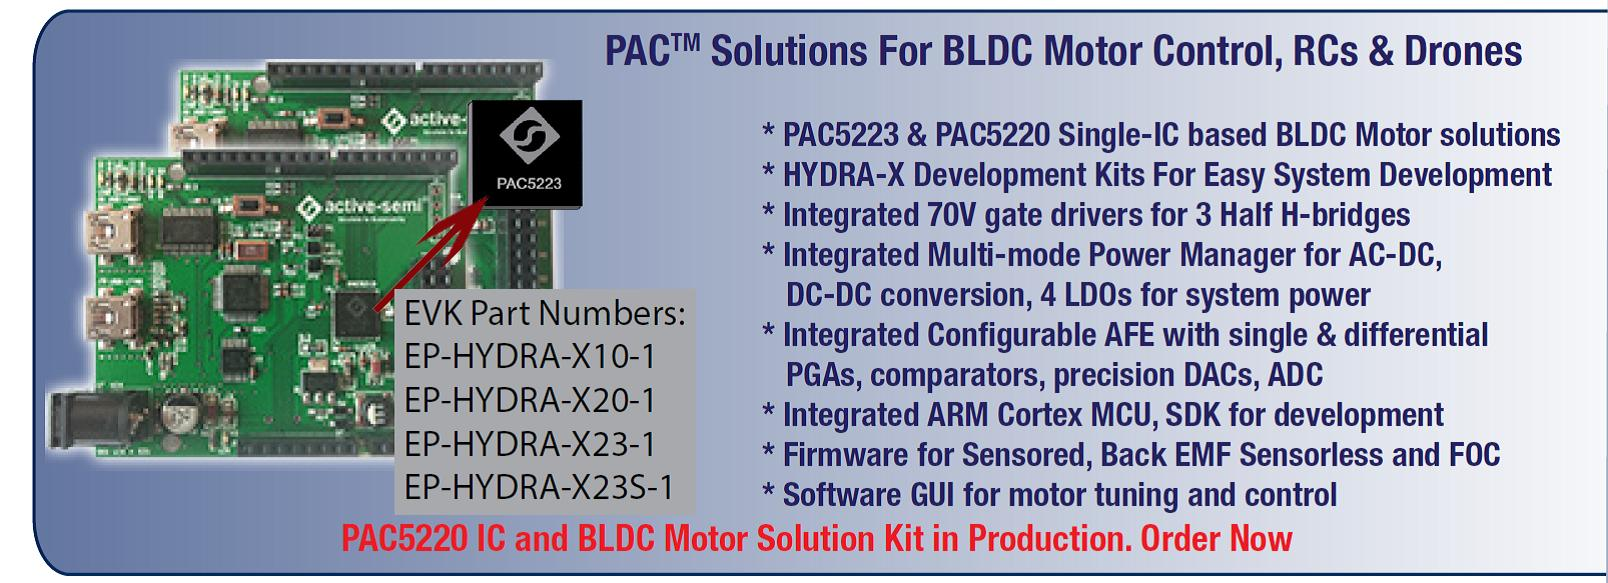 PAC Solutions for BLDC Motor Control